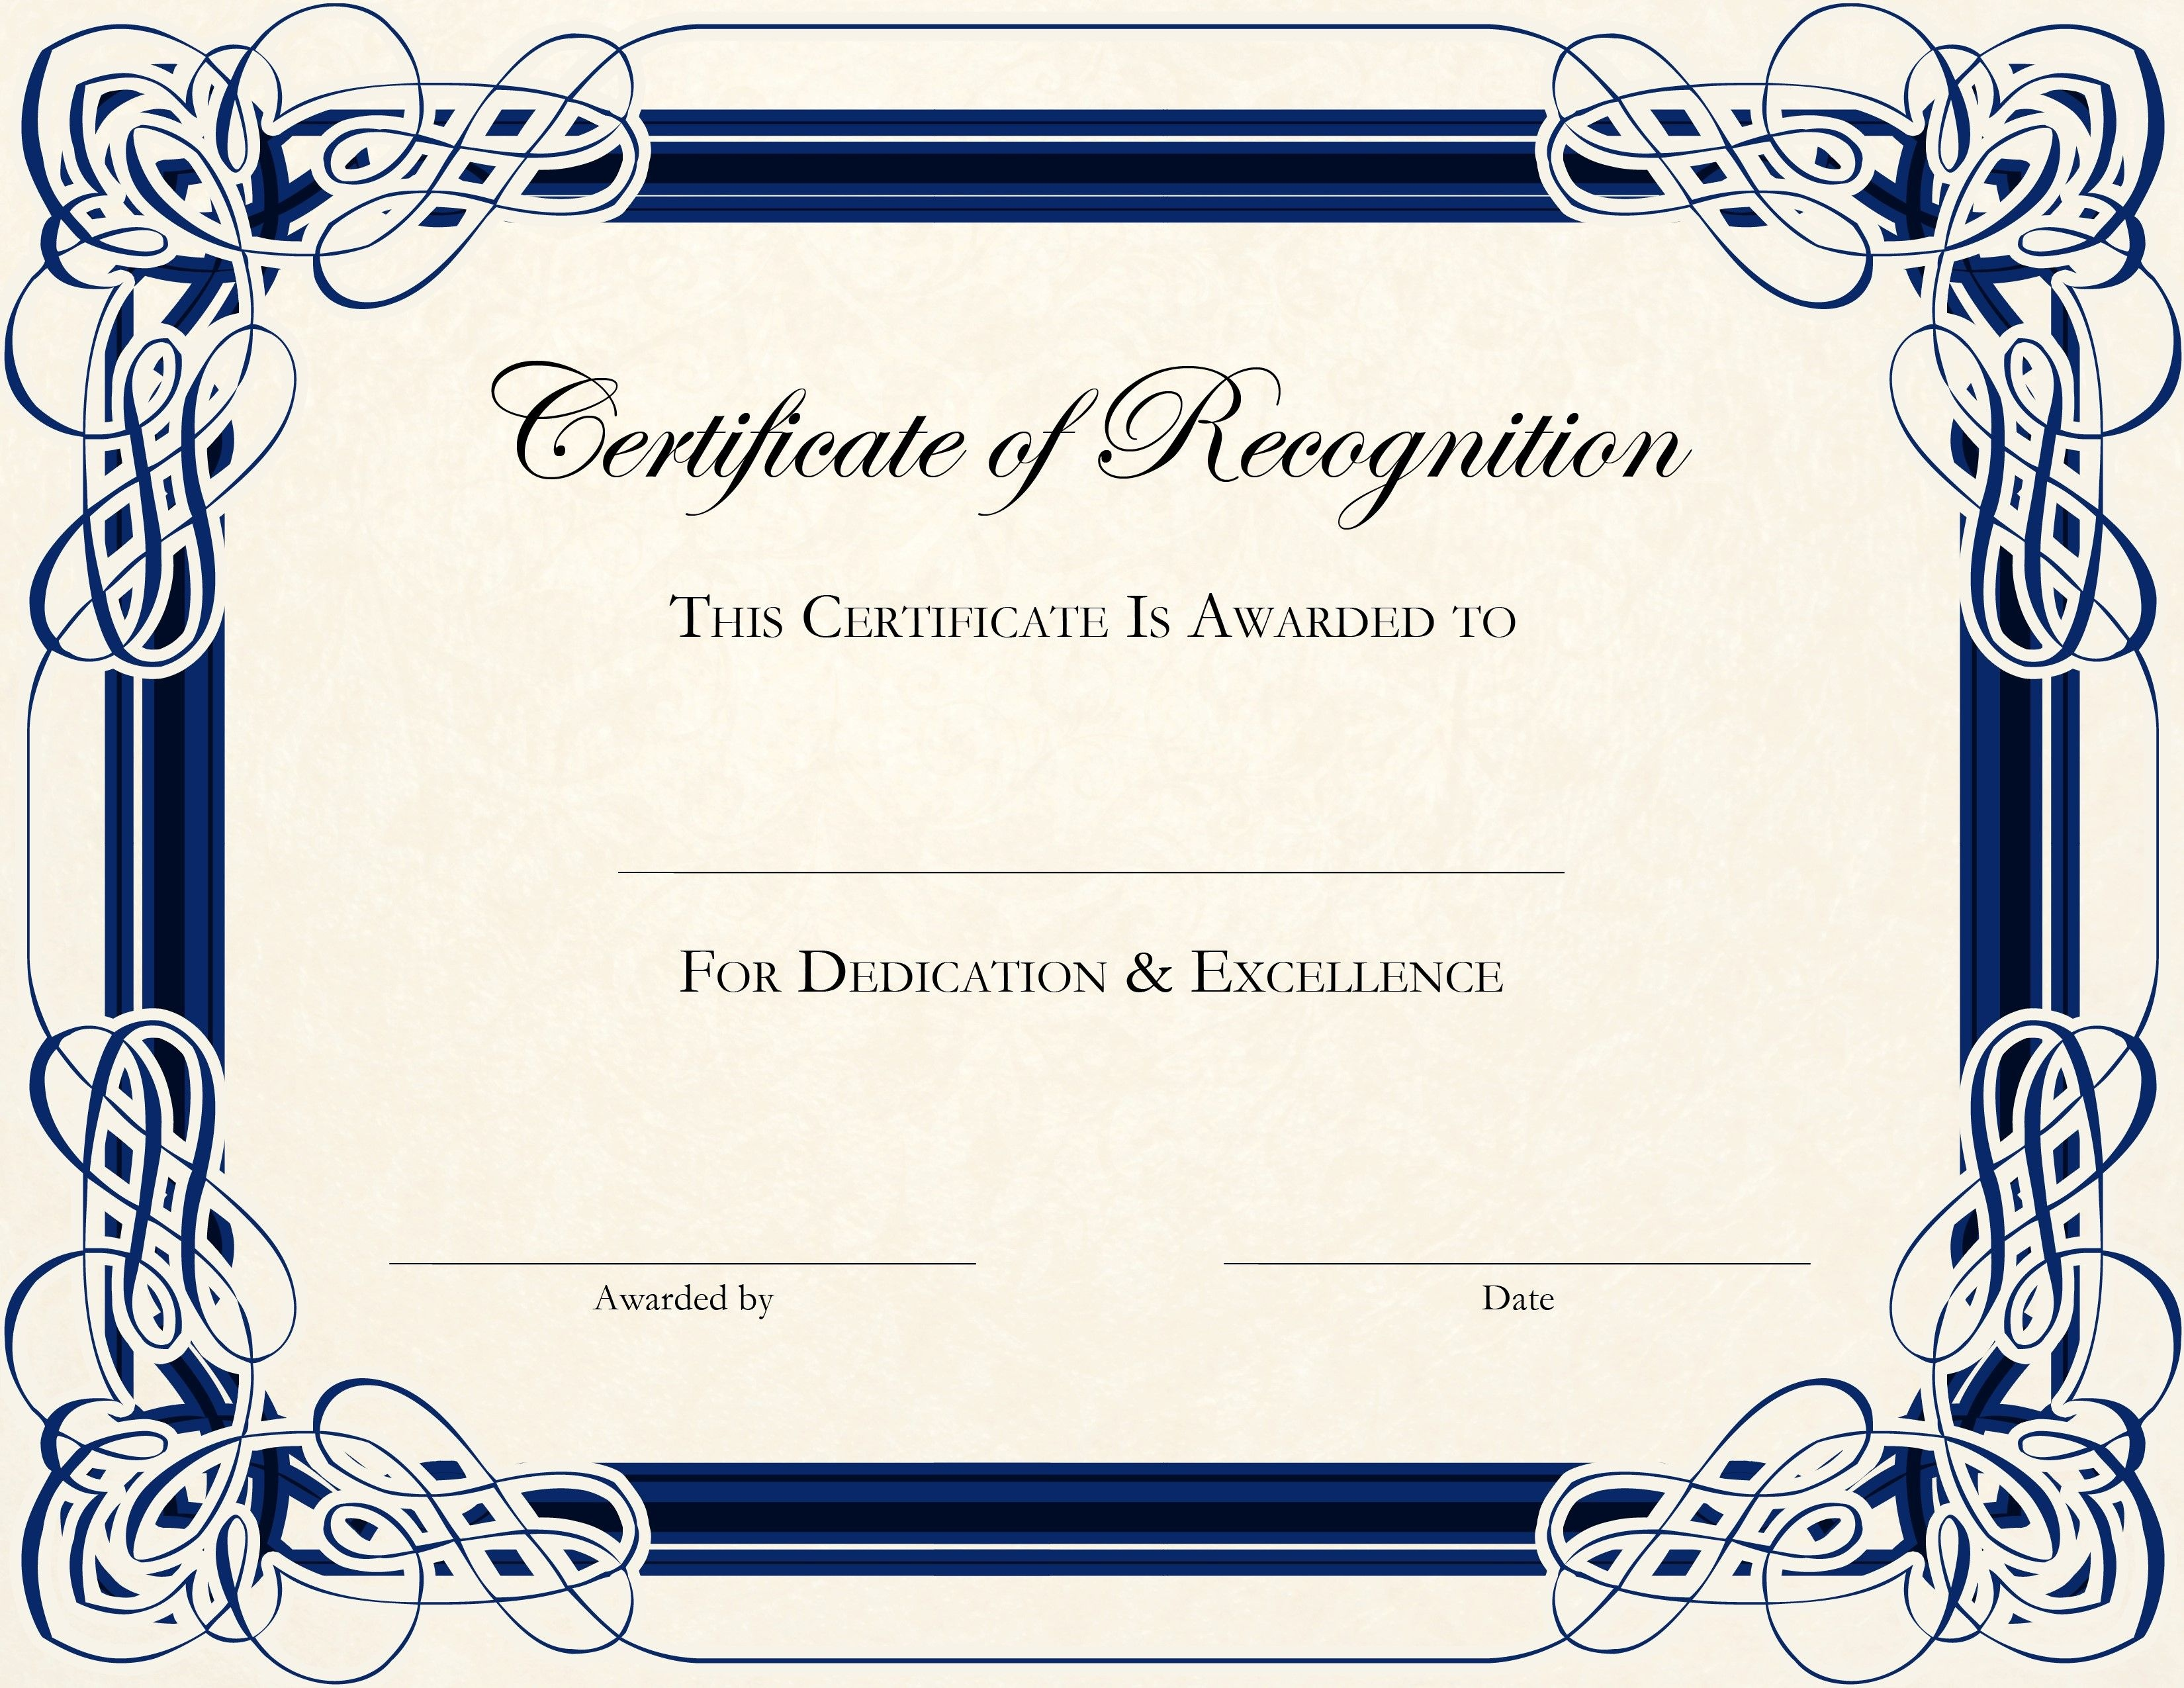 Free Printable Certificate Templates For Teachers | Besttemplate123 - Free Printable Blank Certificates Of Achievement